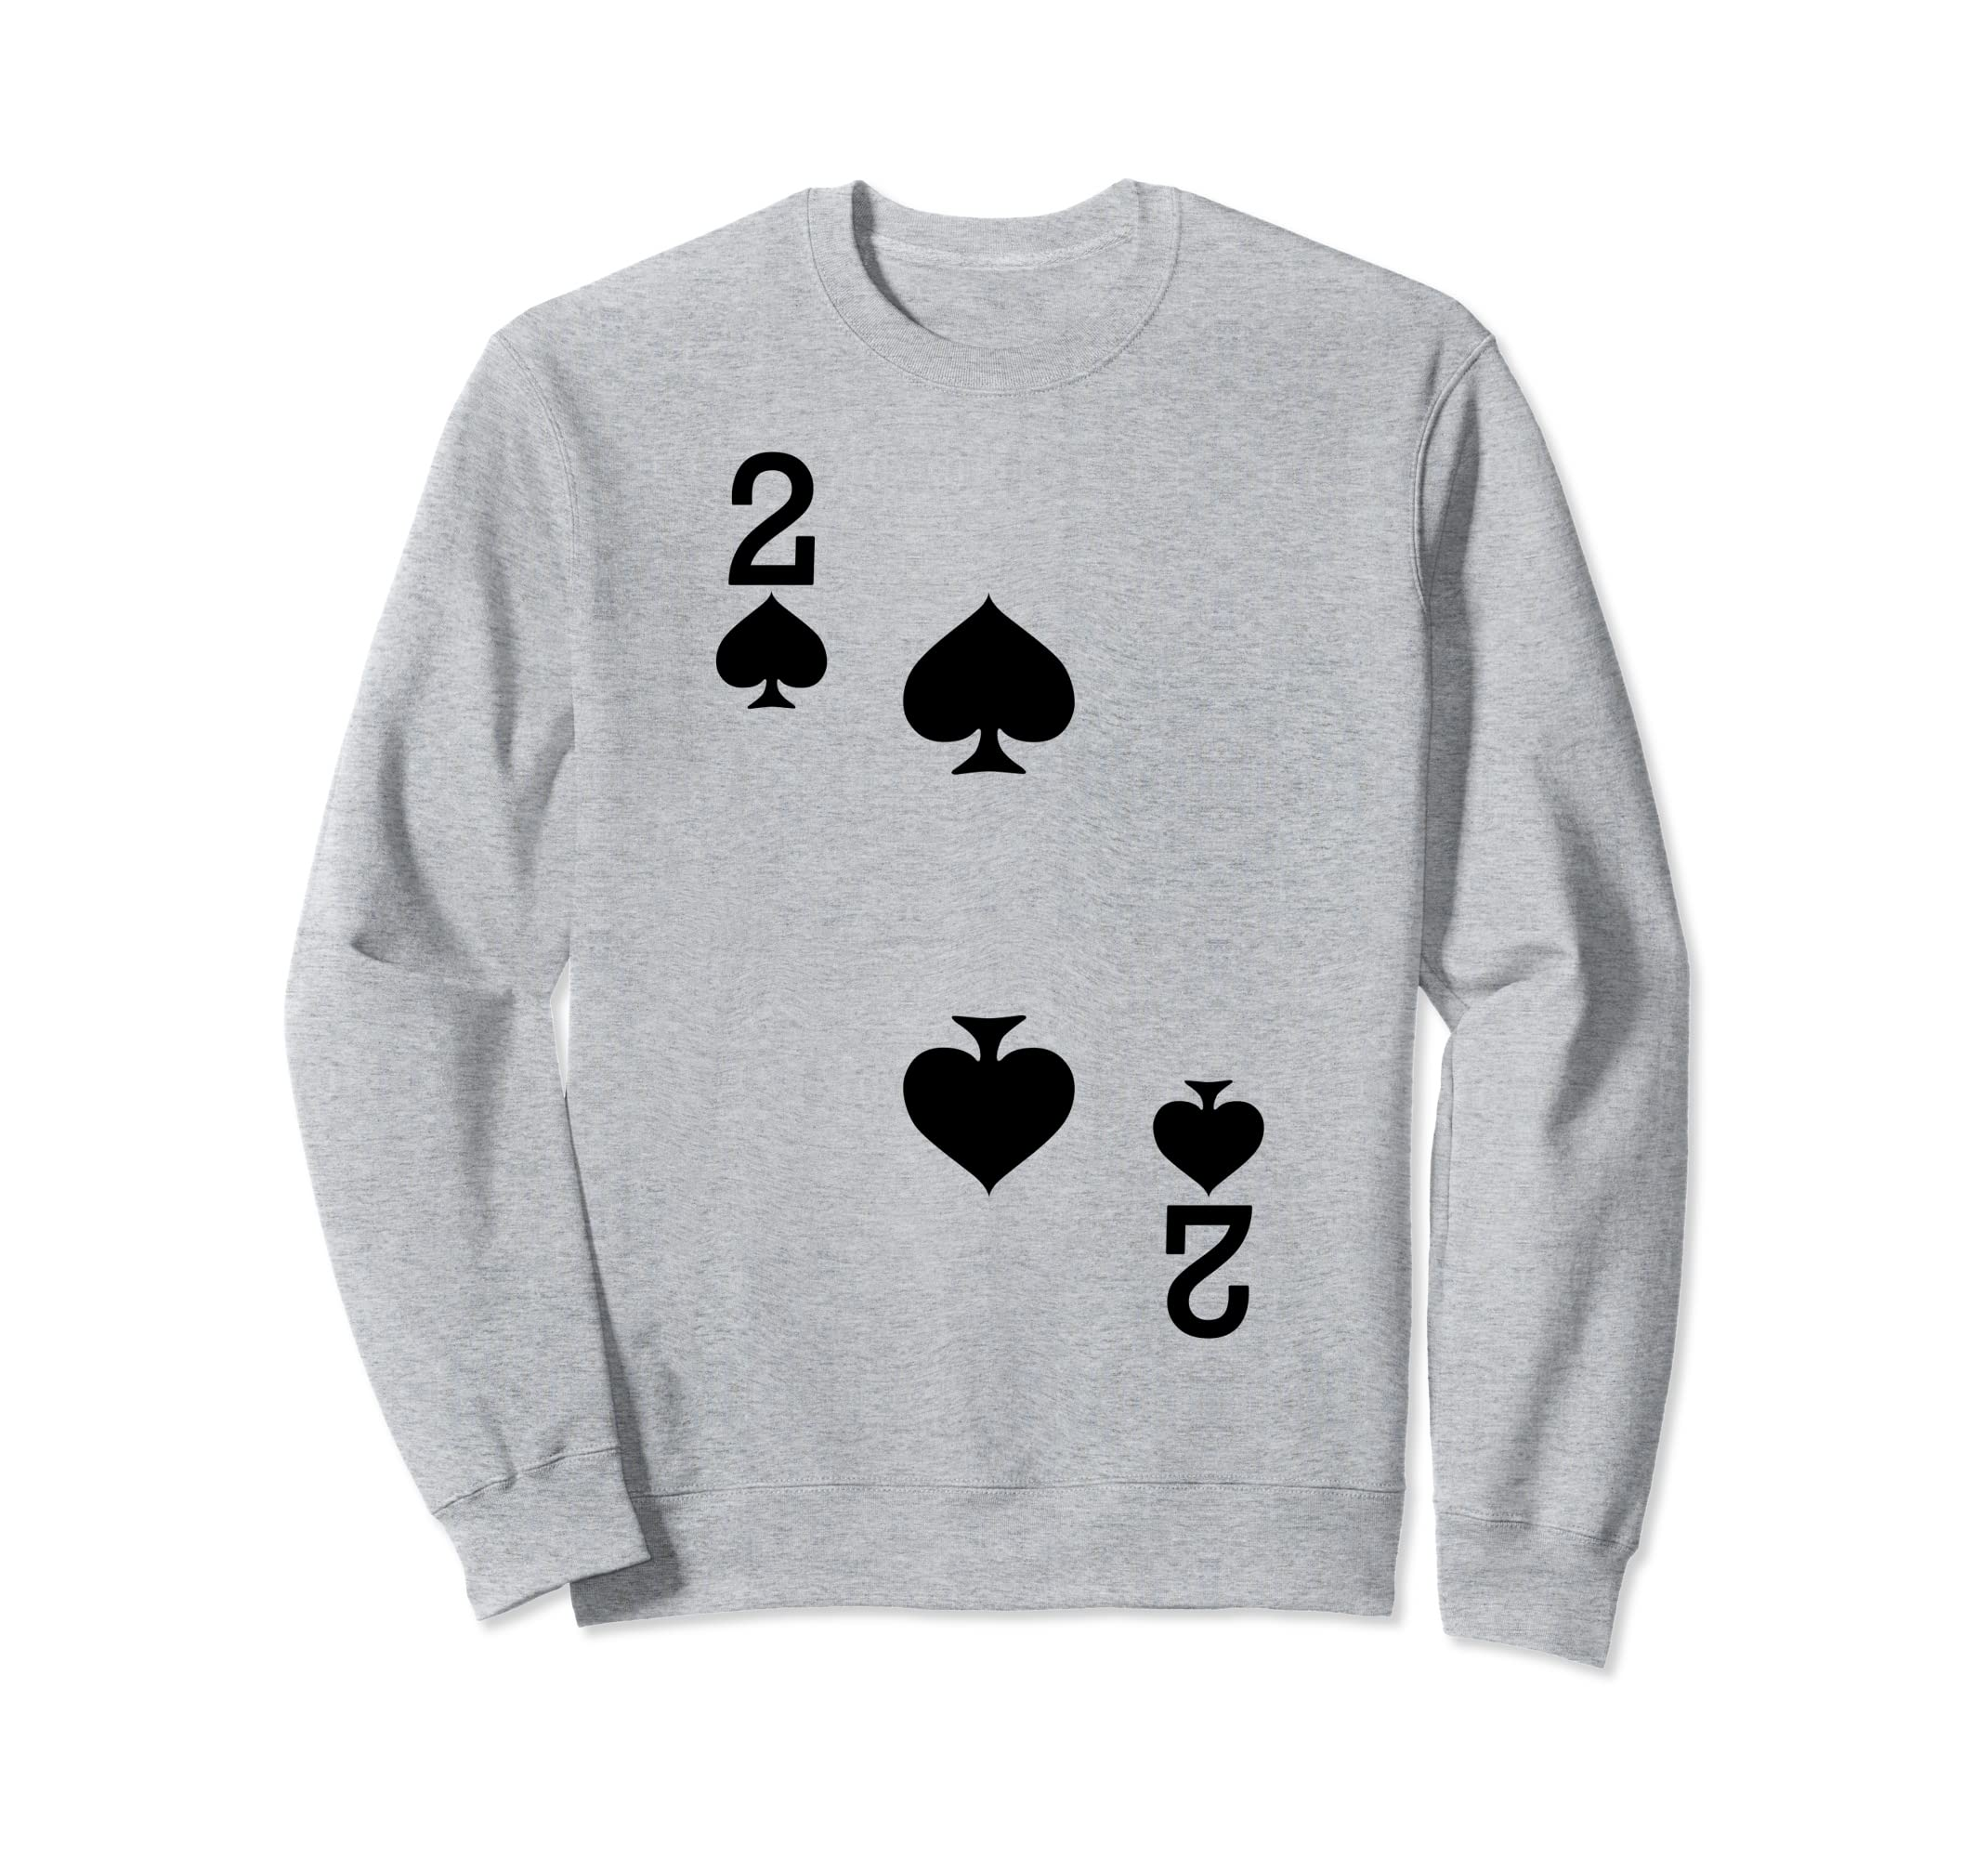 2 of Spades - Playing Card Halloween Costume Sweatshirt-Rose